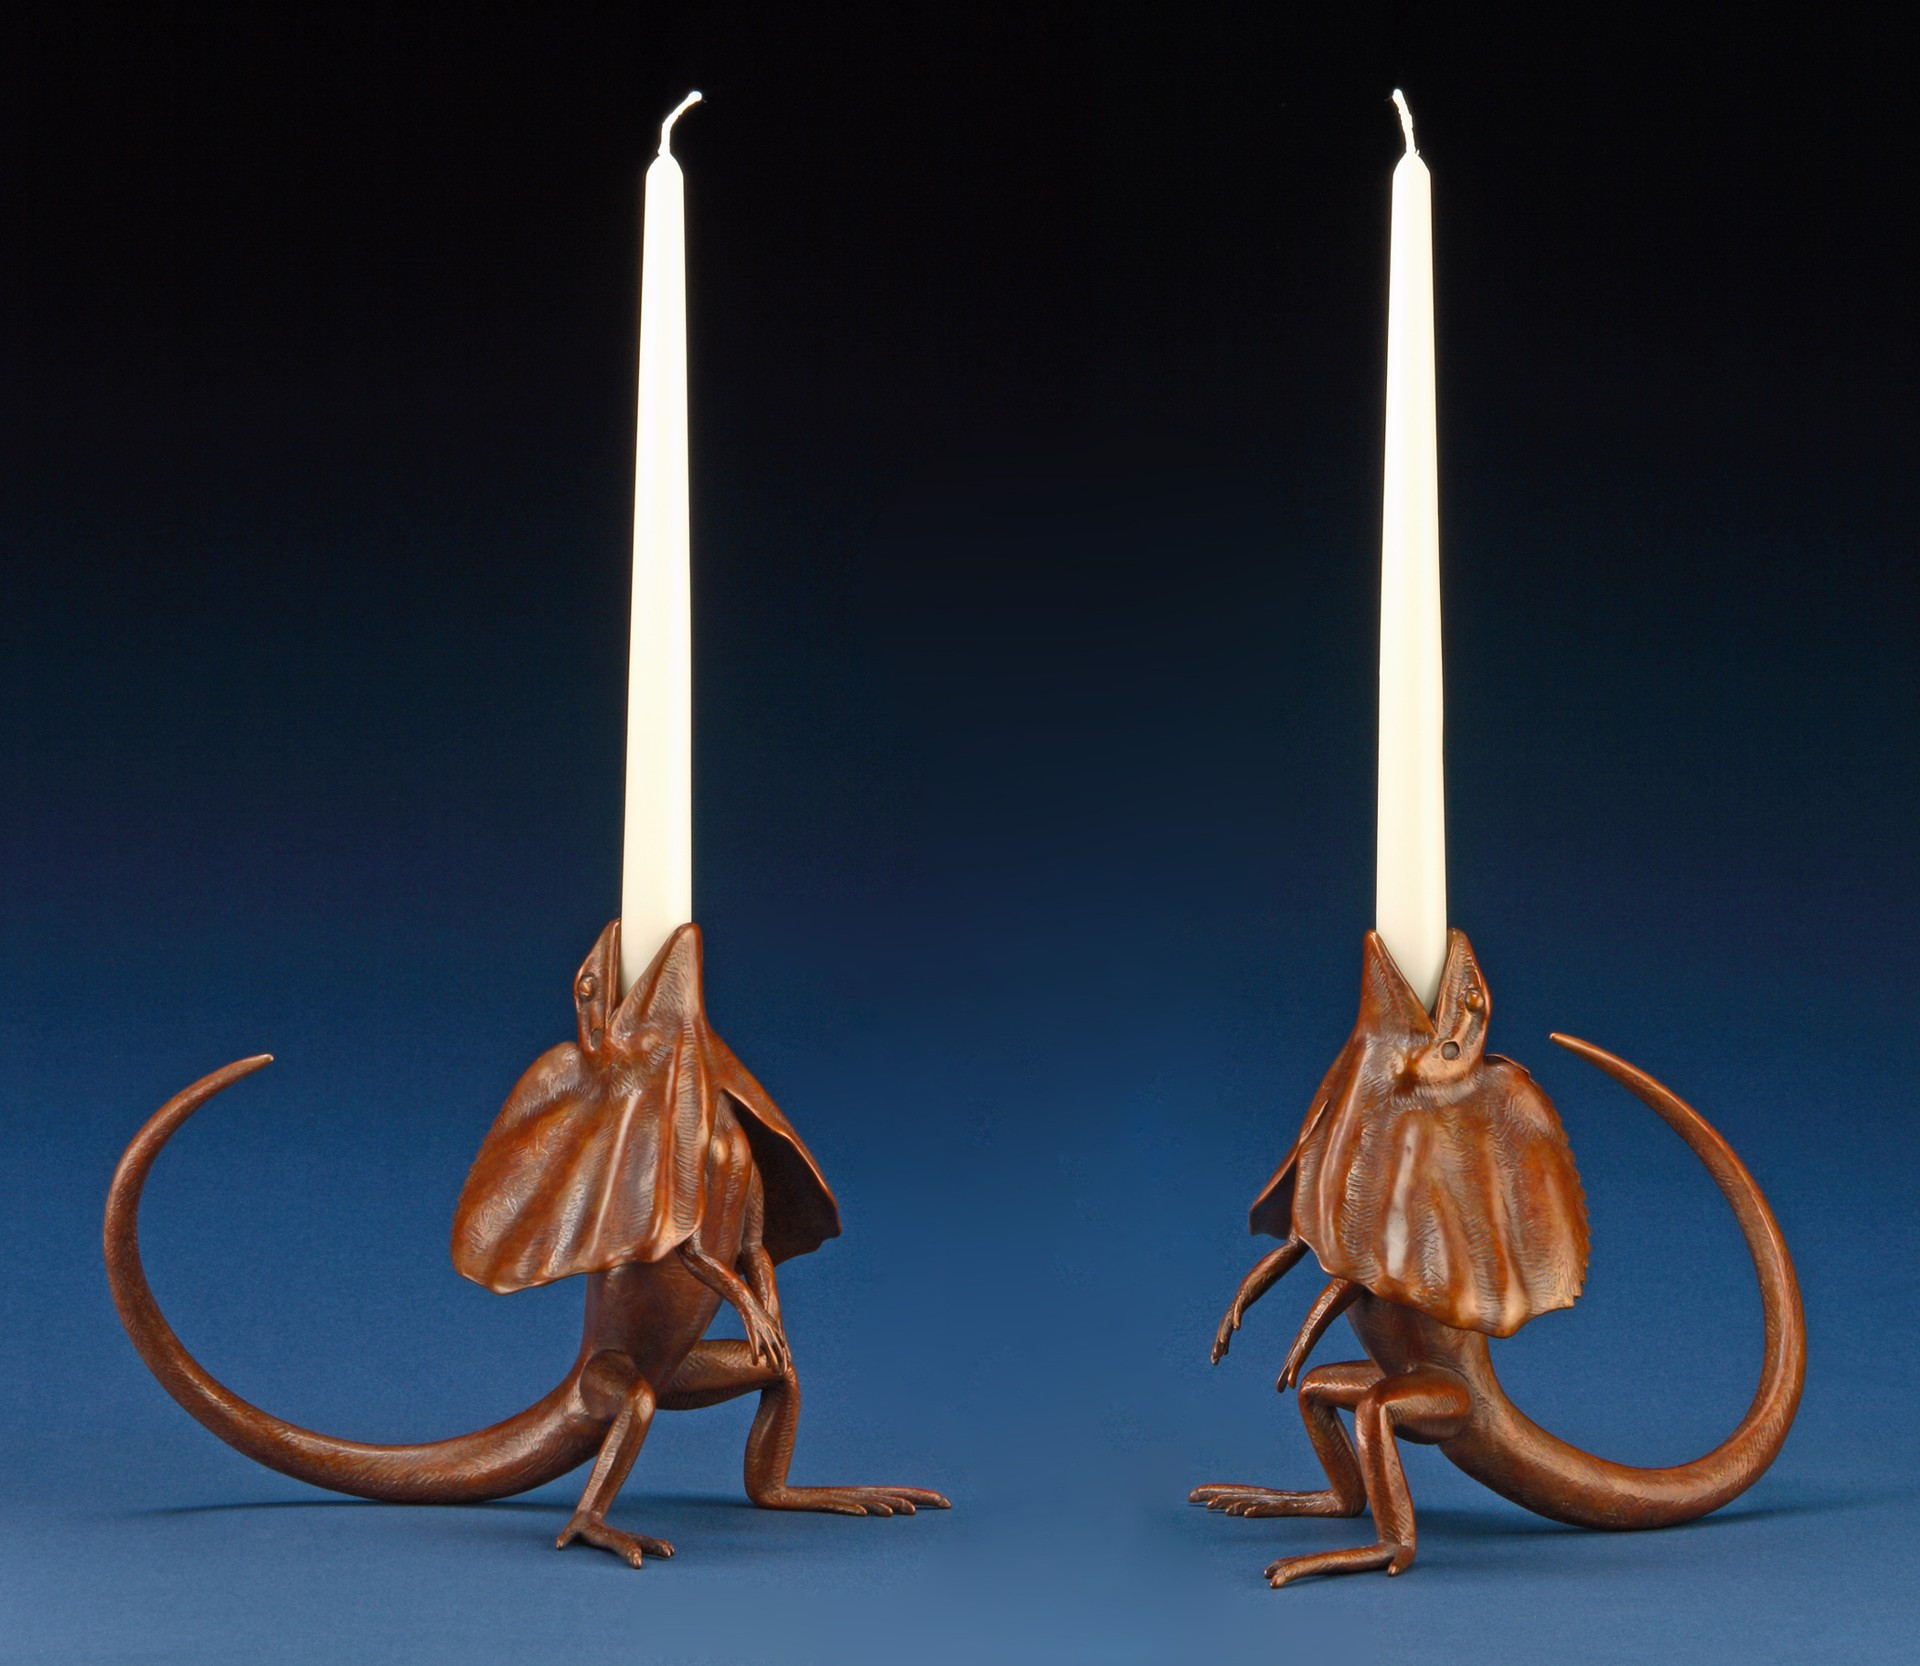 Frilled Lizard Candle Holders by Tony Hochstetler